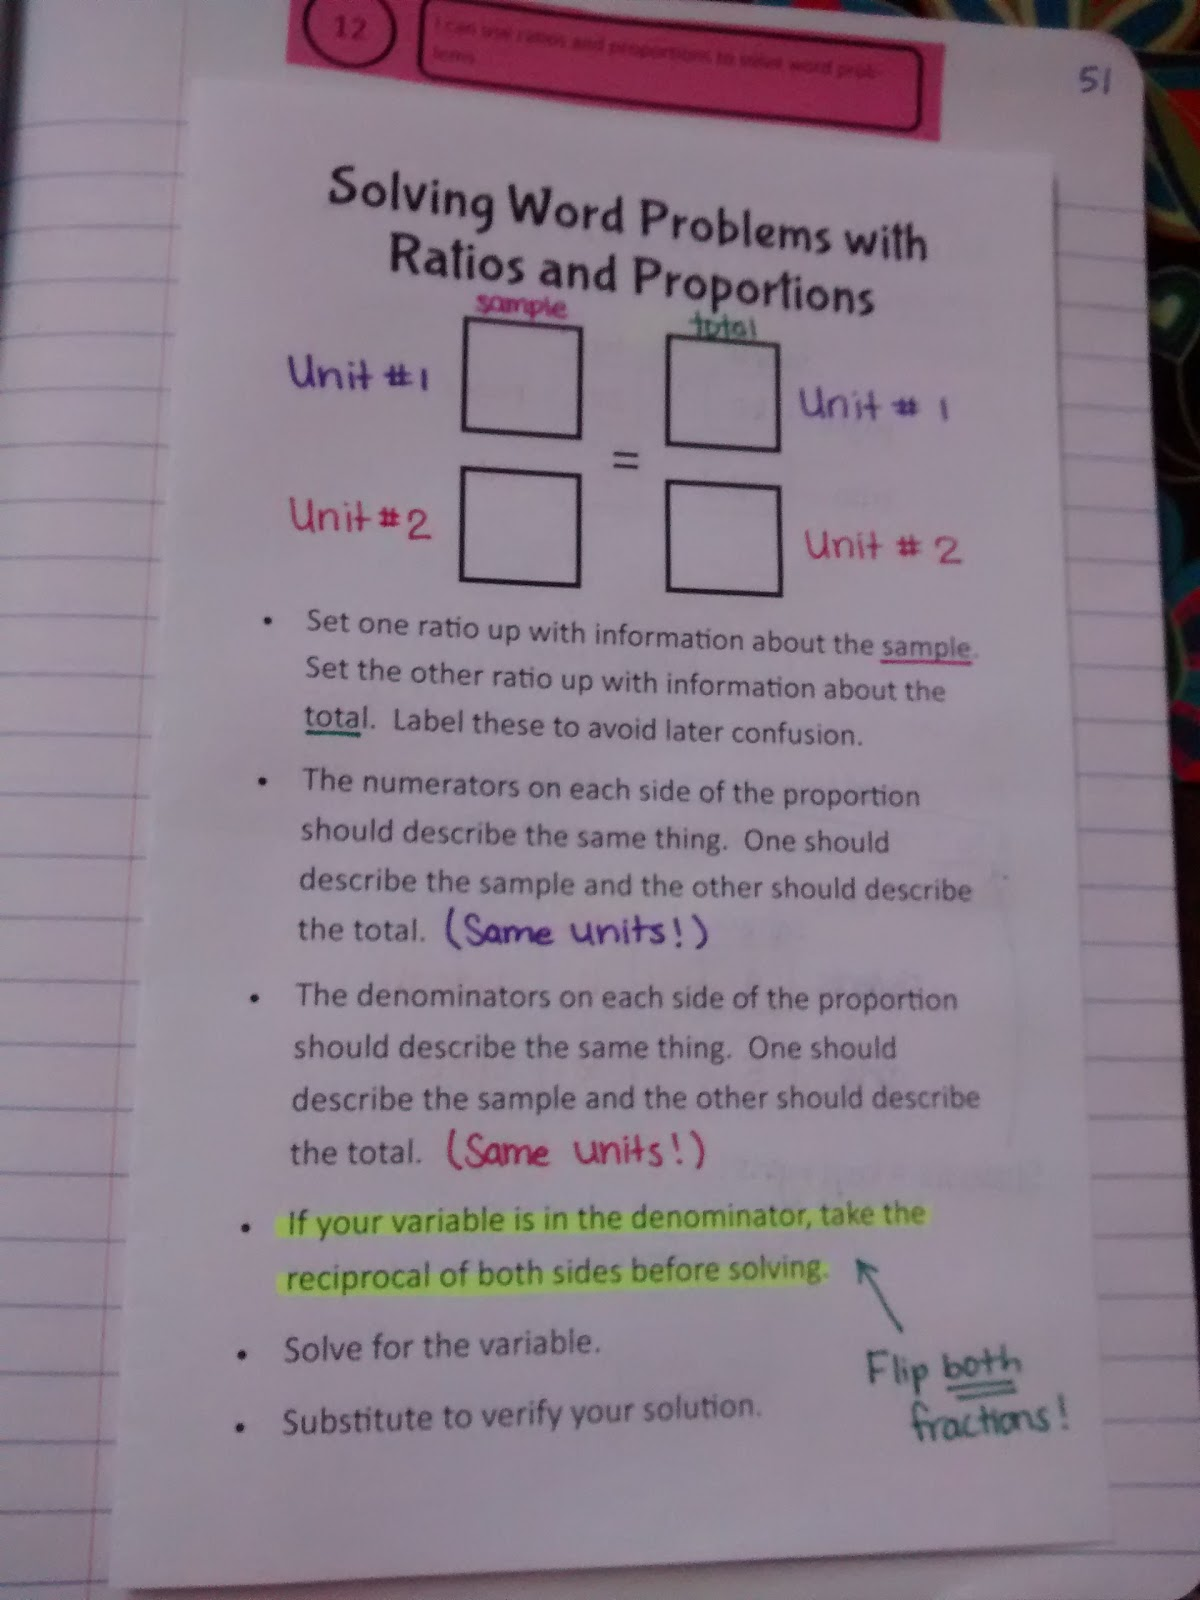 Worksheets Proportions Worksheet math love solving word problems with ratios and proportions wednesday october 28 2015